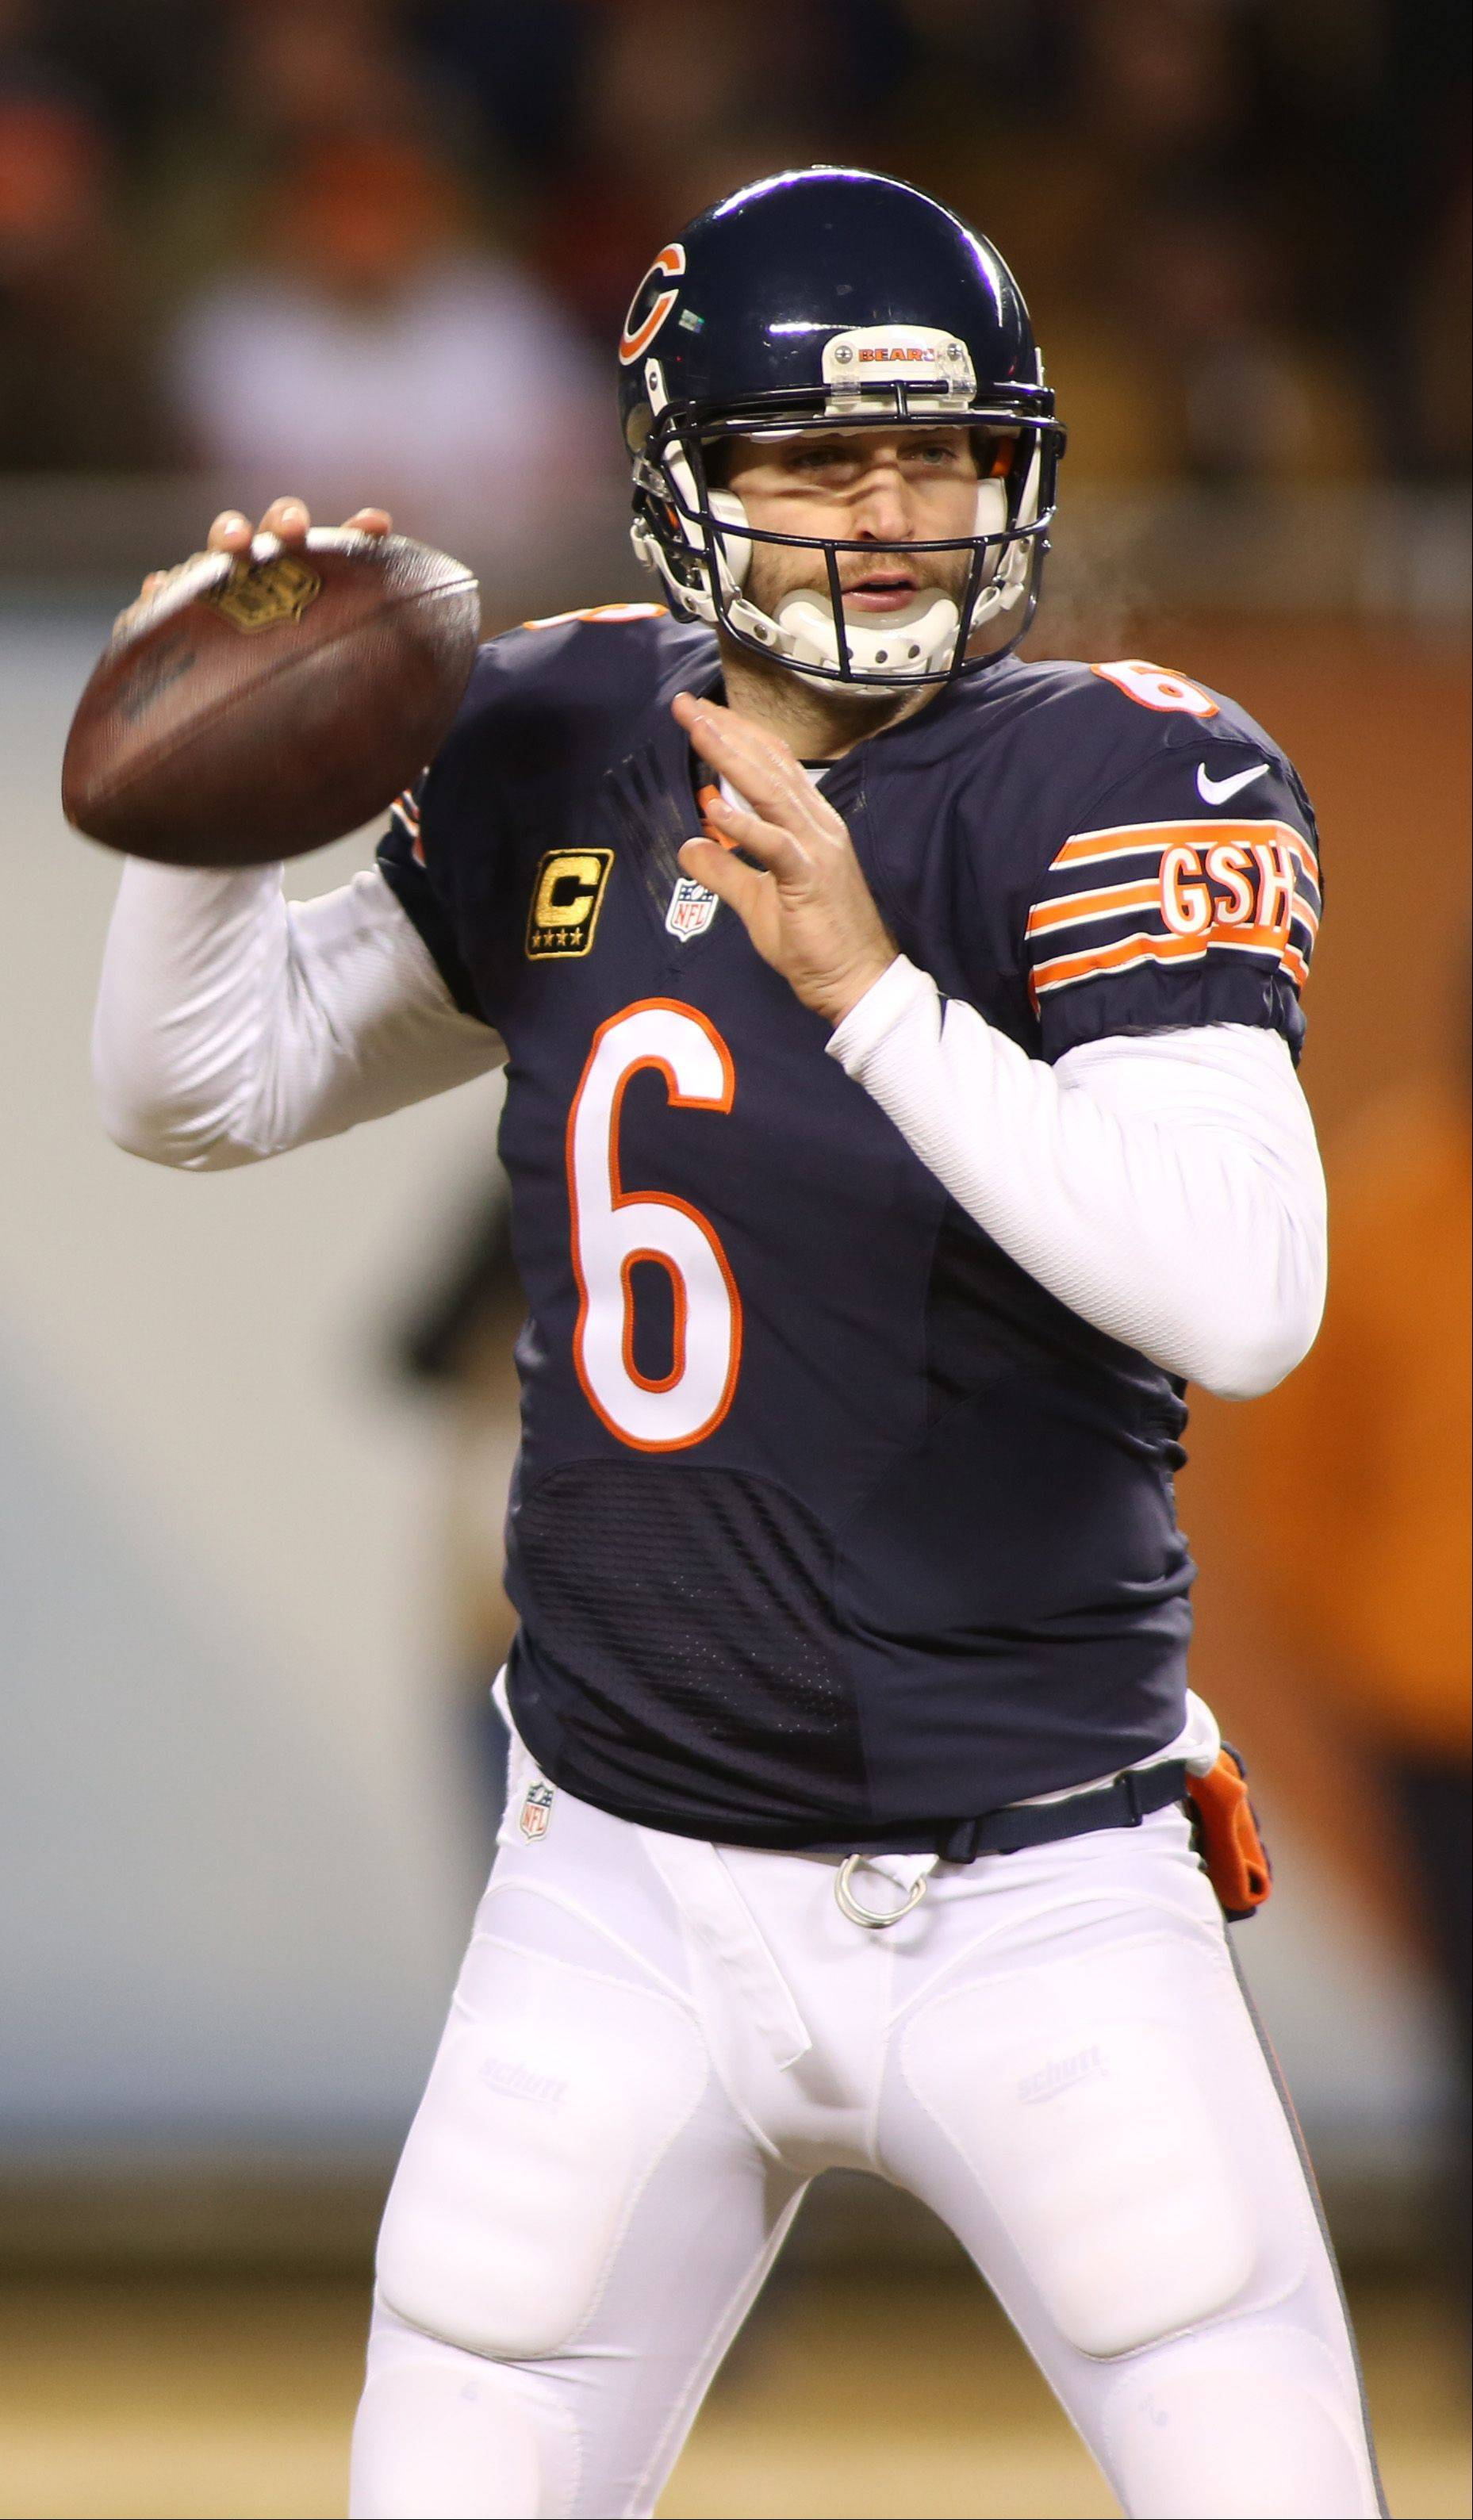 The Bears' Jay Cutler looks over the middle to pass against the Packers.